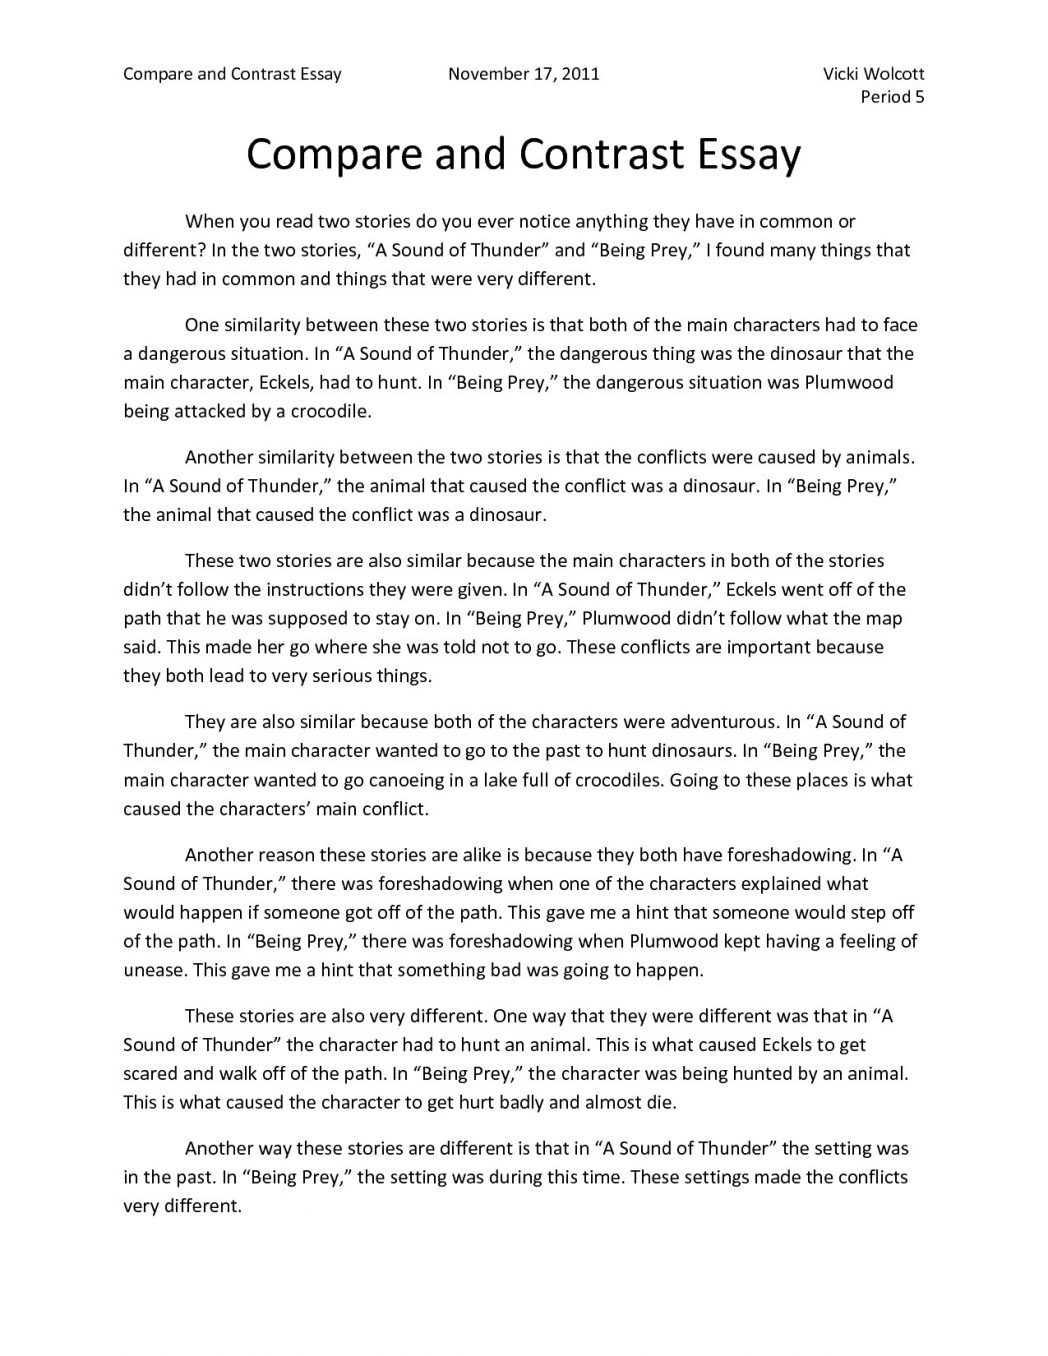 022 Compare And Contrast Essay Outline Template Printables Corners Colleg College High School Level For Topics Students Free Pdf Vs 1048x1356 Impressive Worksheet Format 5 Paragraph Point By Full